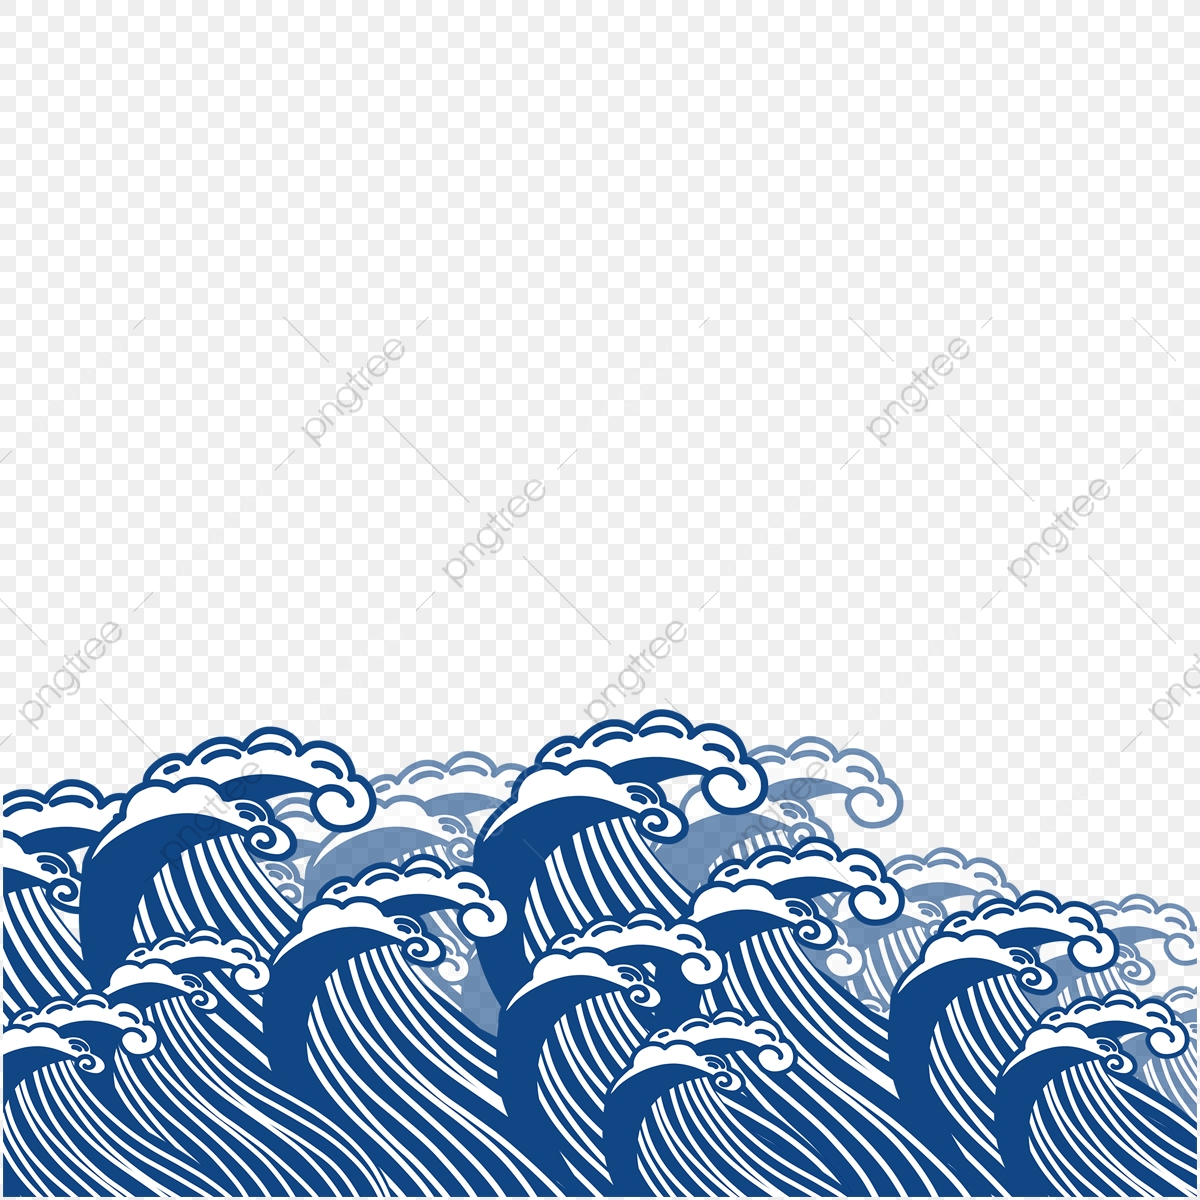 Blue hand painted maps. Waves clipart flood